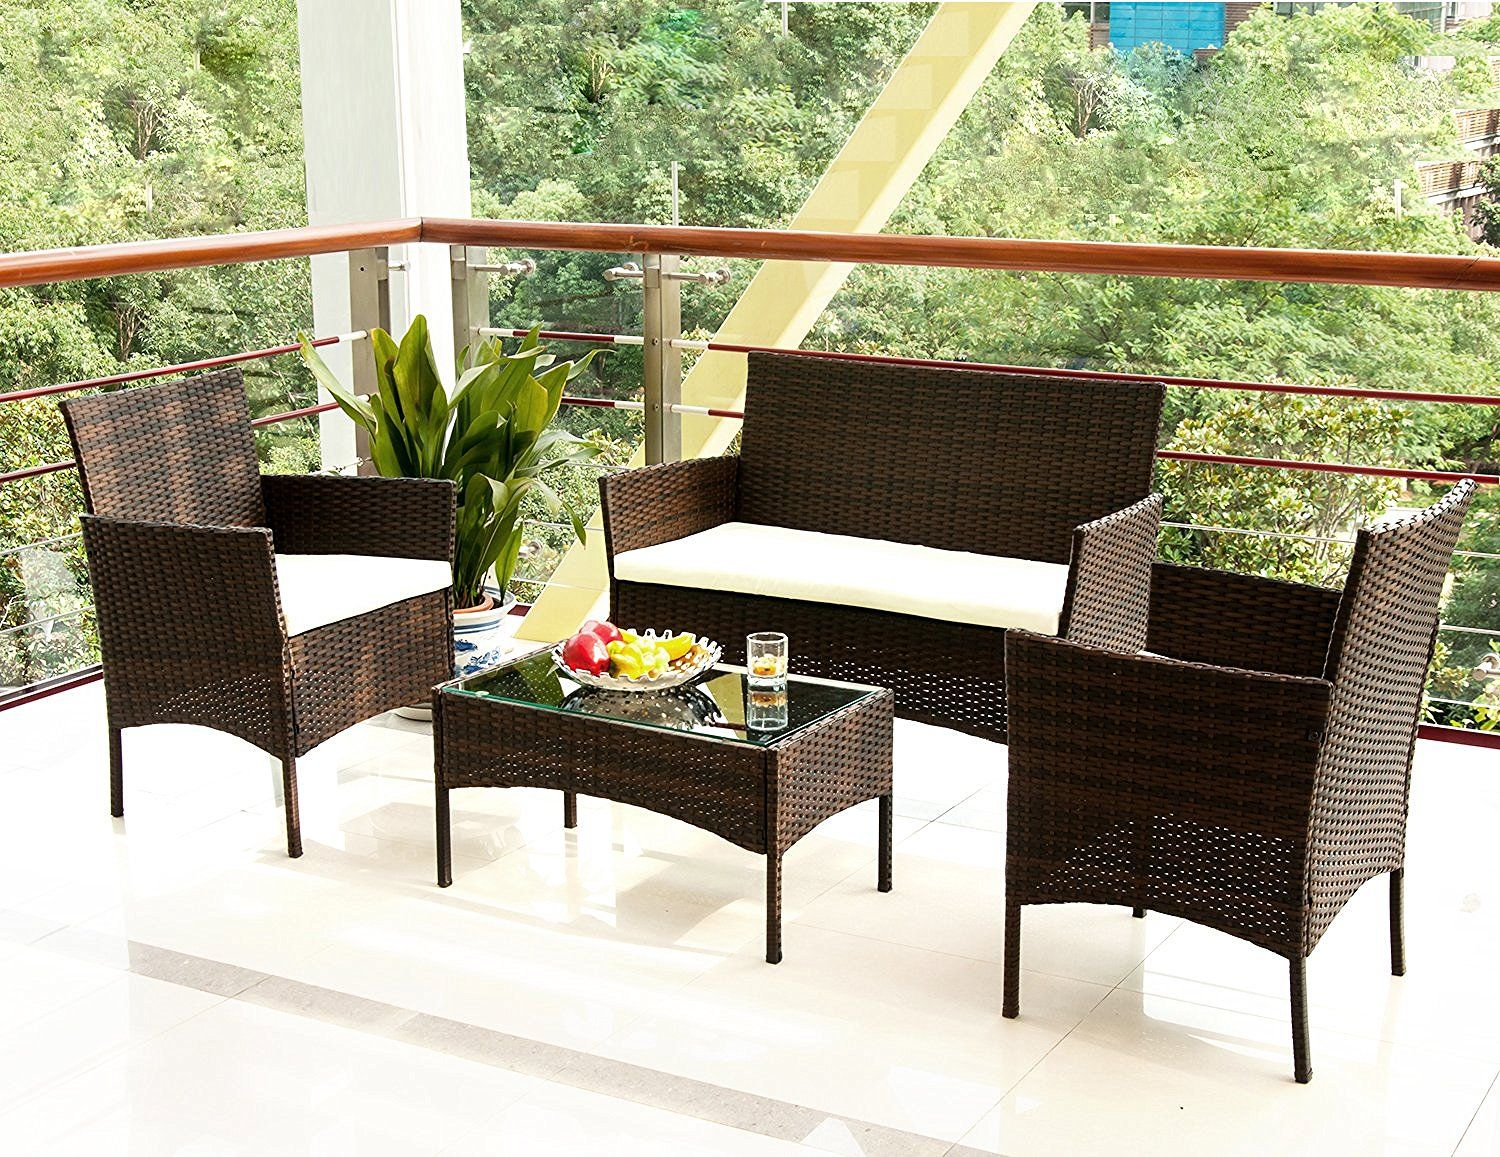 Amazon Com Merax 4 Pc Outdoor Garden Rattan Patio Furniture Set